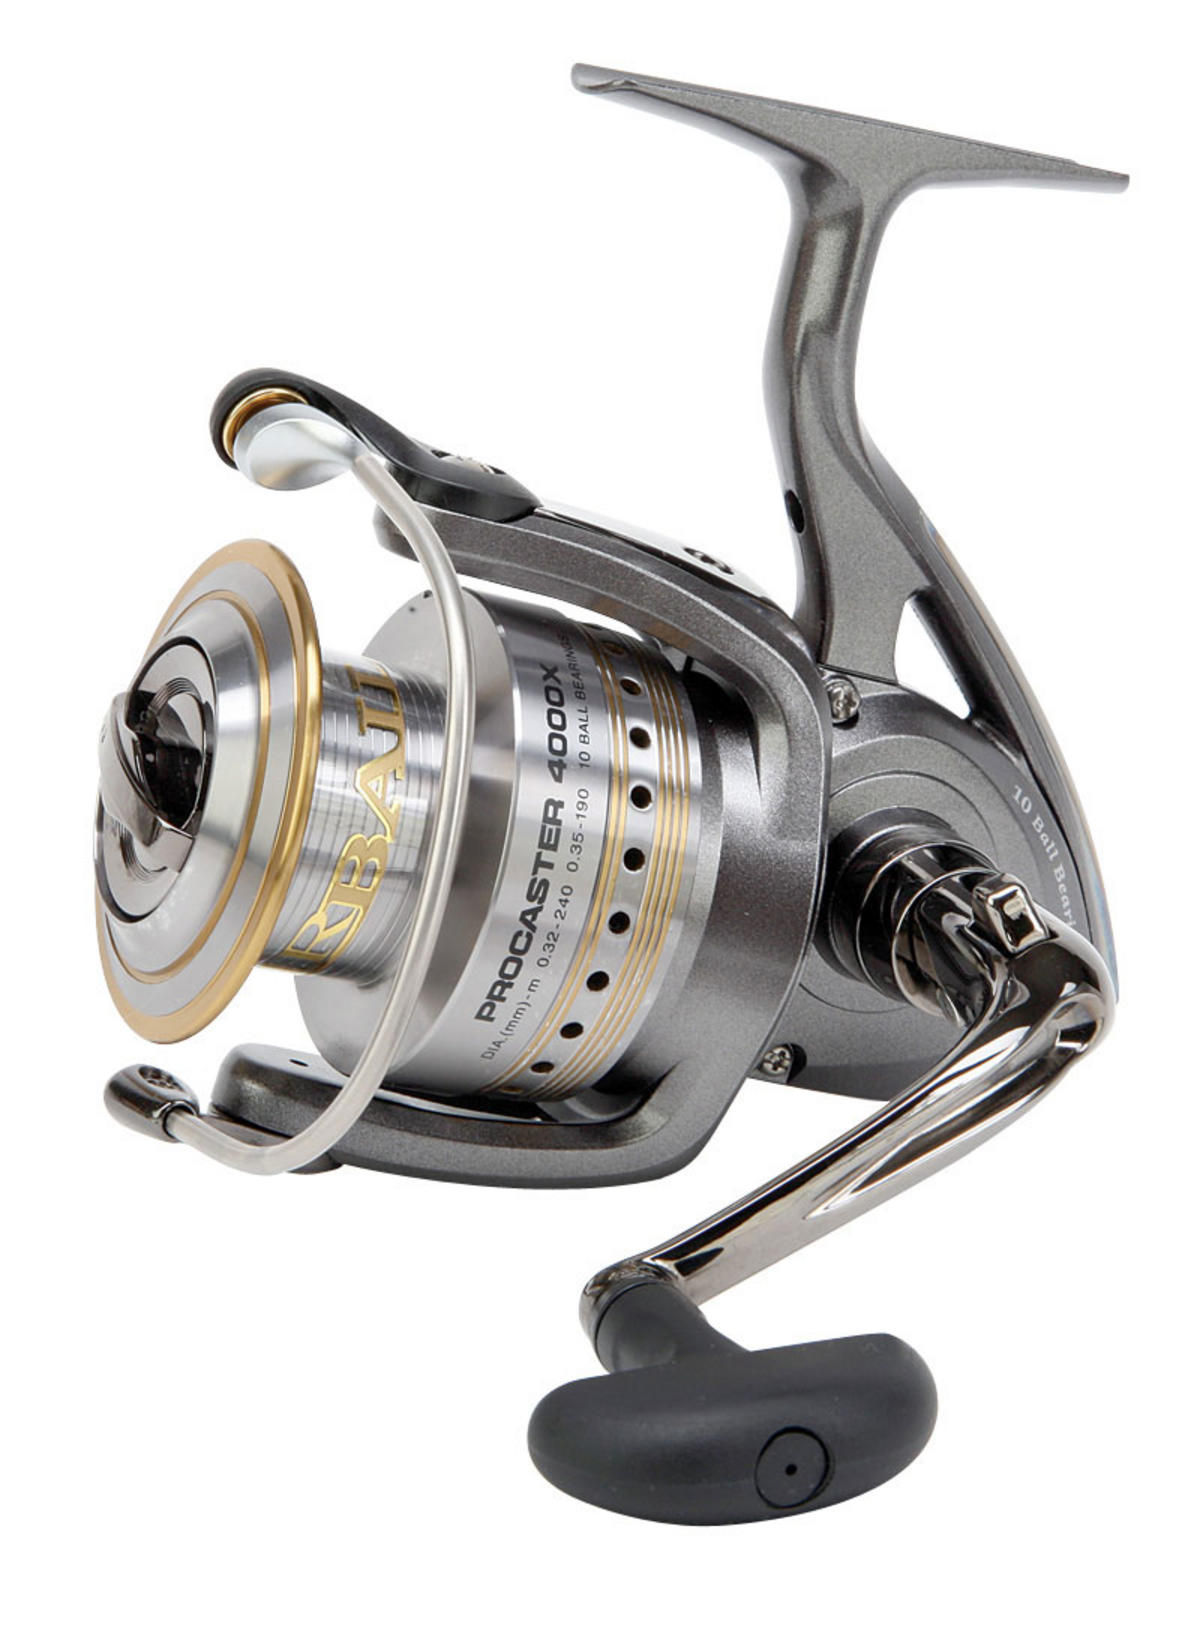 Daiwa procaster 3500x model no proc3500x fishing reel for Daiwa fishing reels